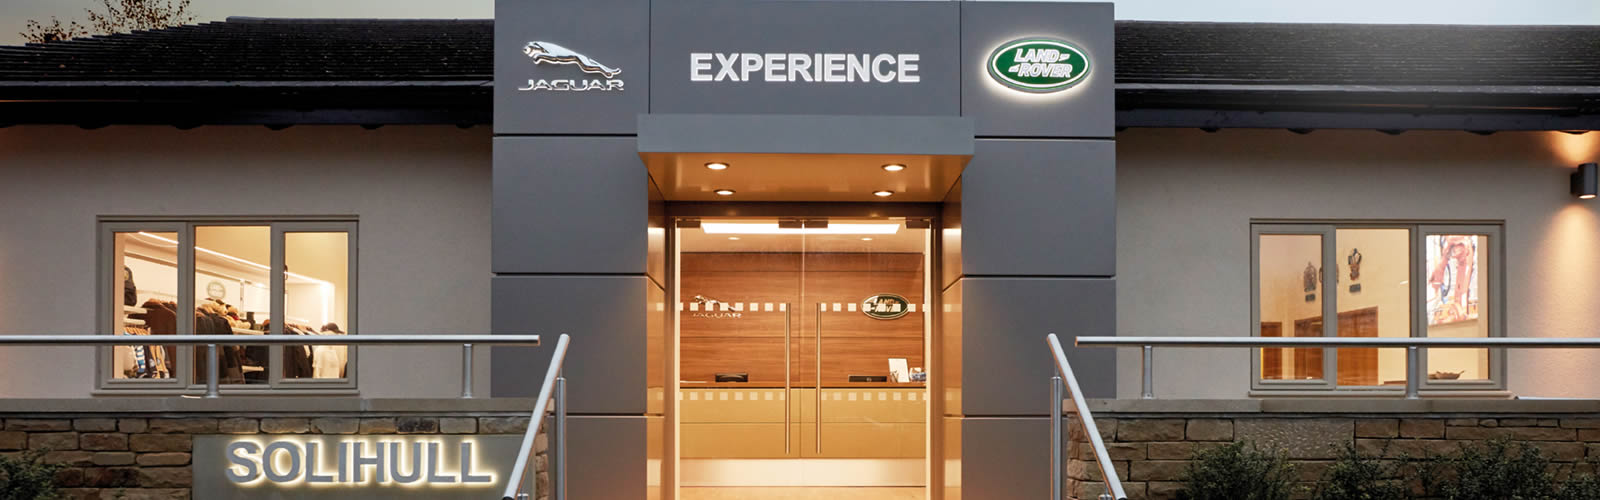 LAND ROVER EXPERIENCE CENTRE SOLIHULL<br><br>